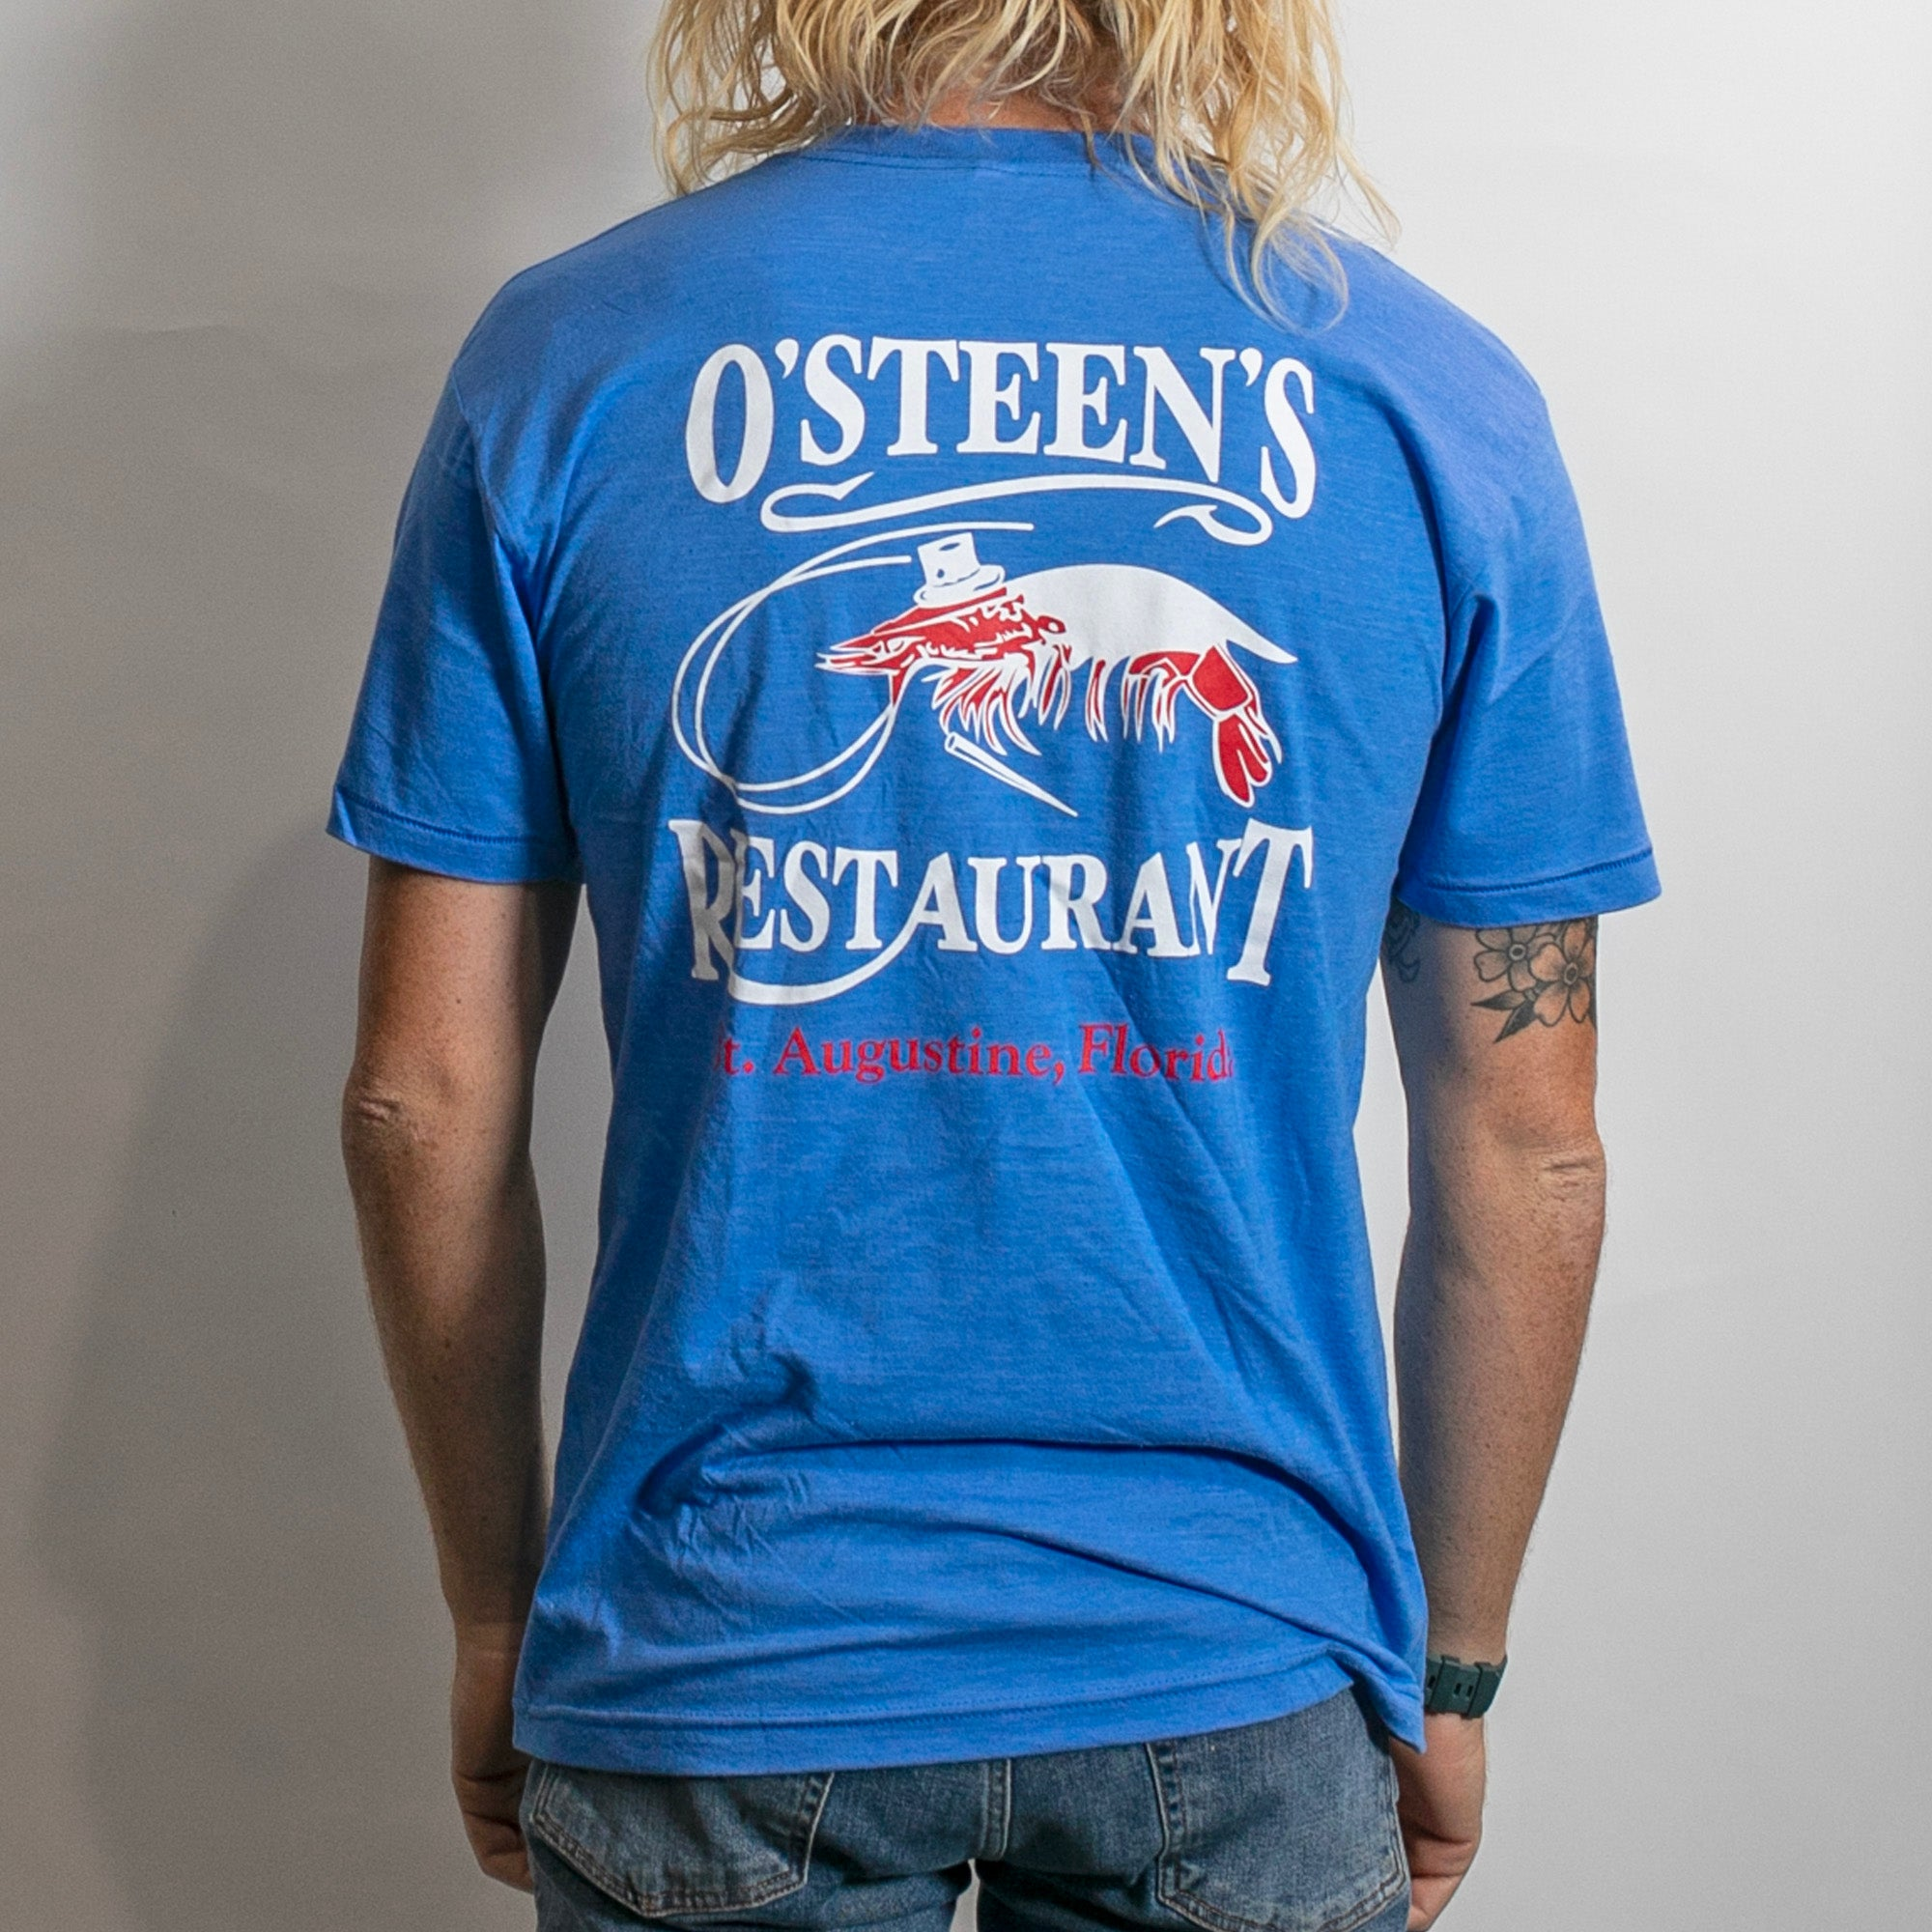 O'Steen's Restaurant Men's S/S T-Shirt